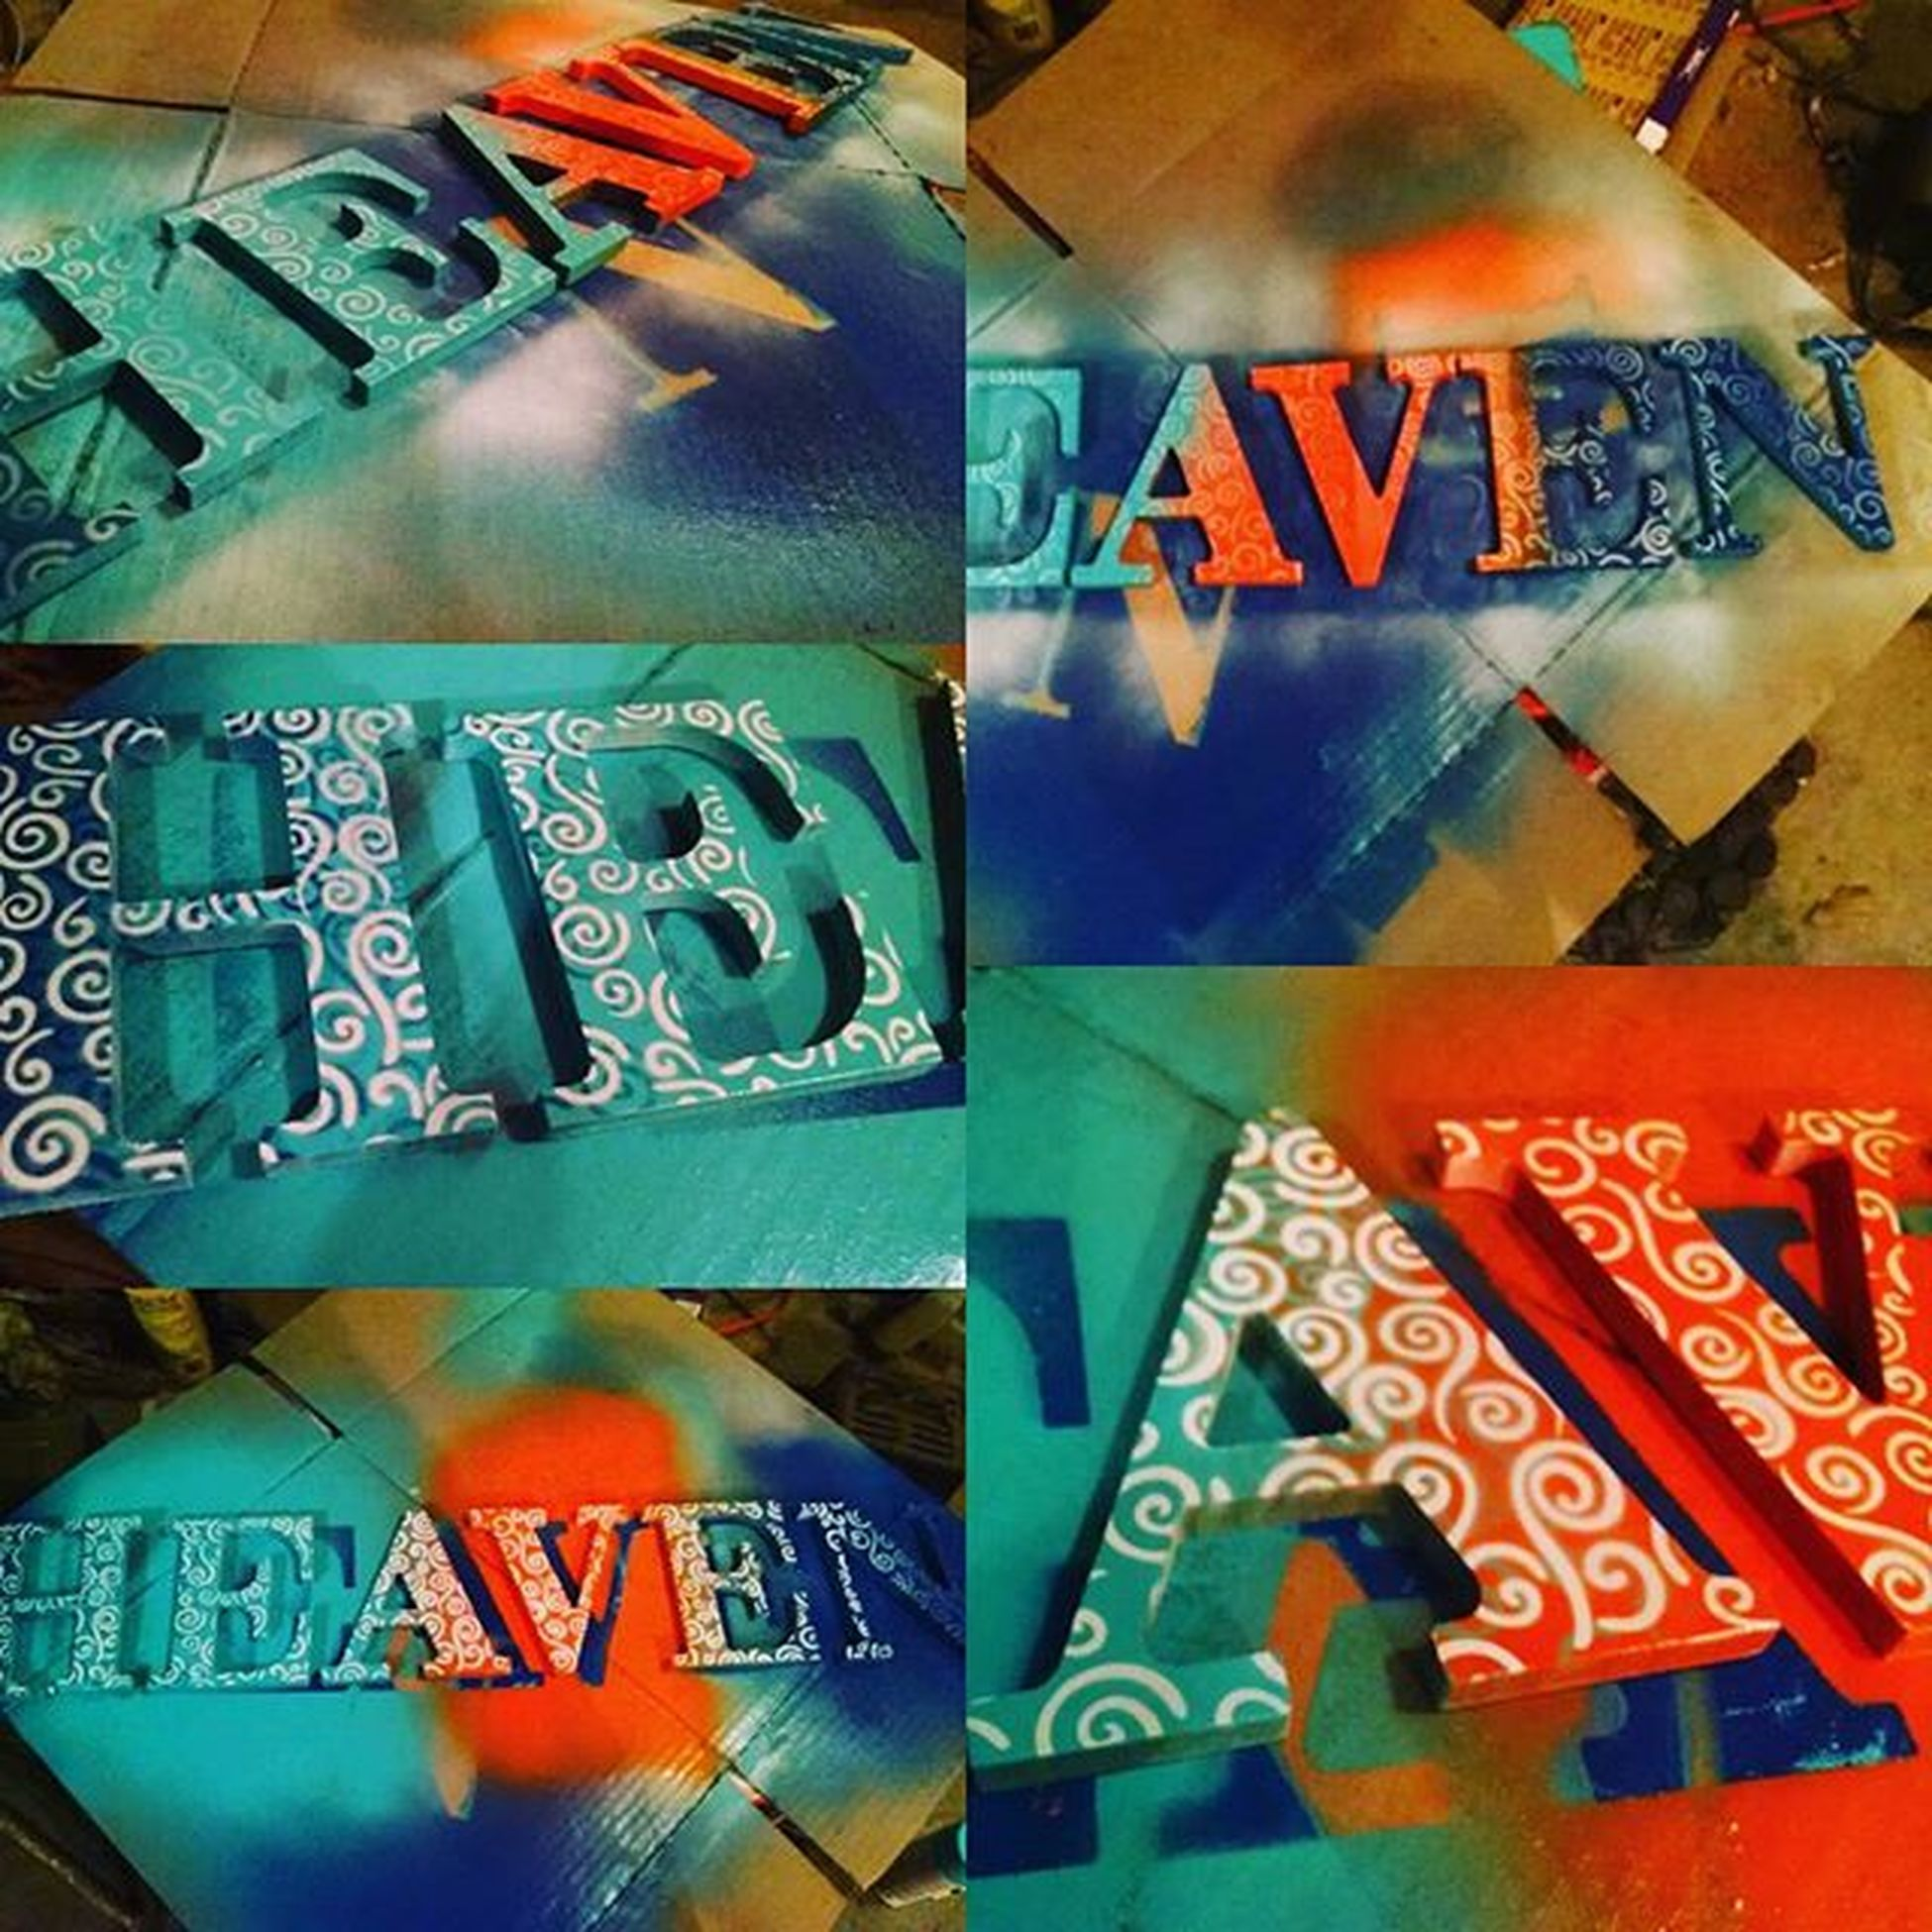 Crafting some letters to hang above the bed. Finish pic coming soon. Meanwhile I'll just be watching paint dry. Crafting Stencil Painting Art Heaven Sliceofheaven Lettering